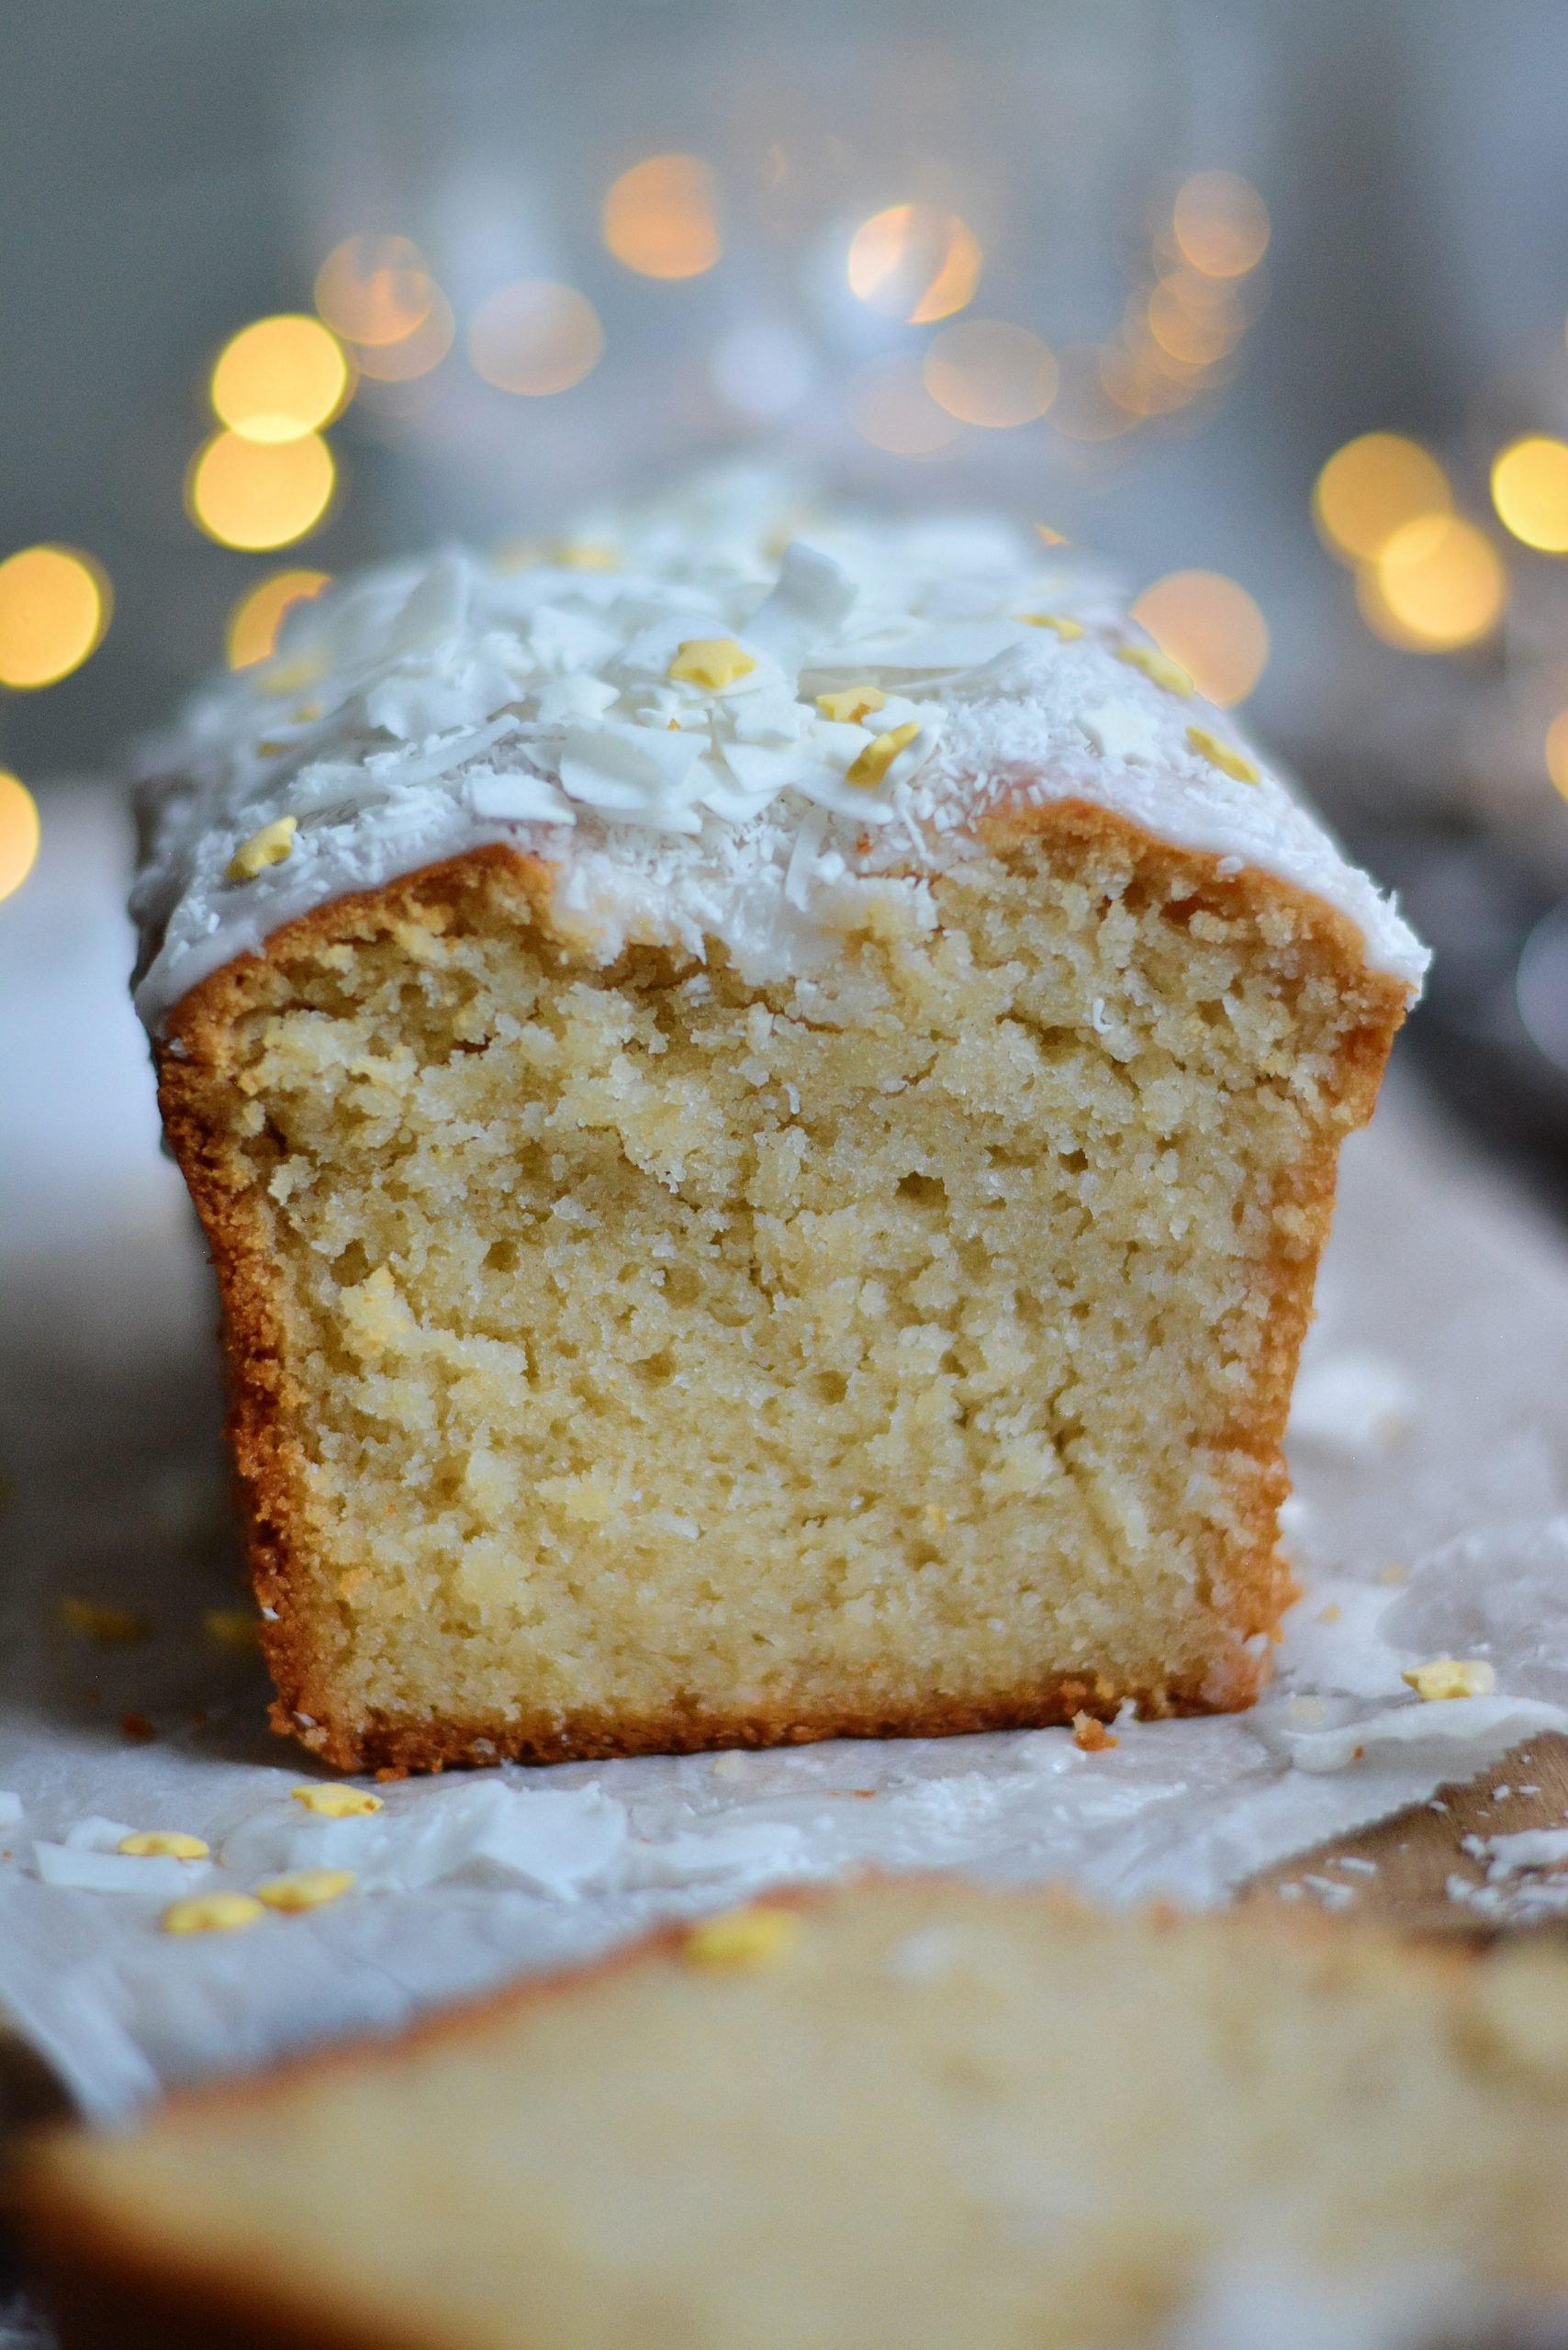 Cake Vegan à la Noix de Coco et Lemon Curd / Vegan Coconut and Lemon Curd Loaf Cake